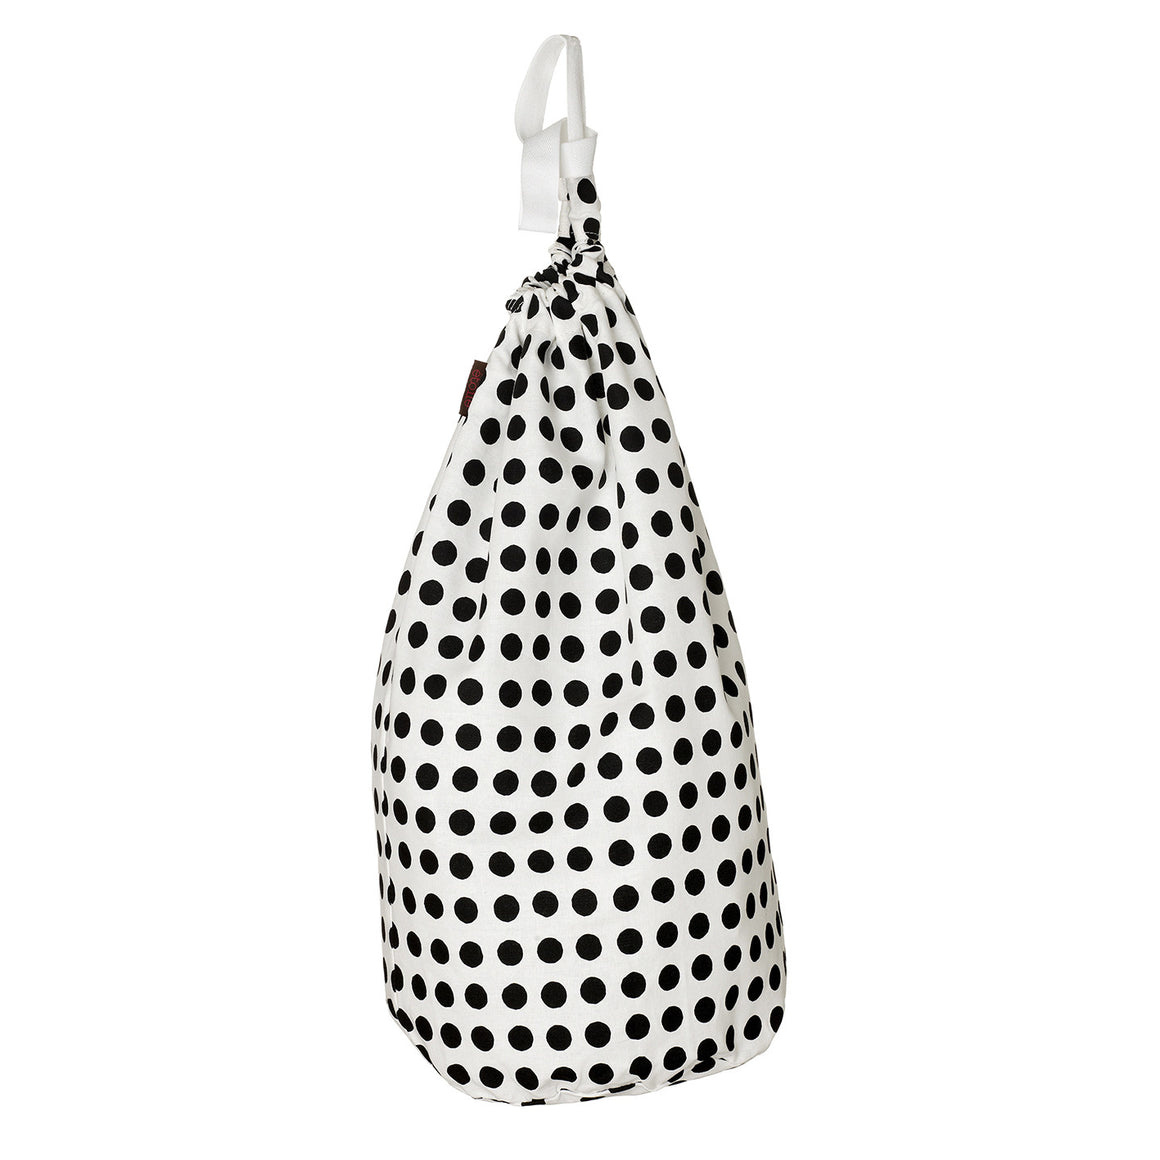 London Polka Dot Cotton Linen Laundry or Storage Bag - Black